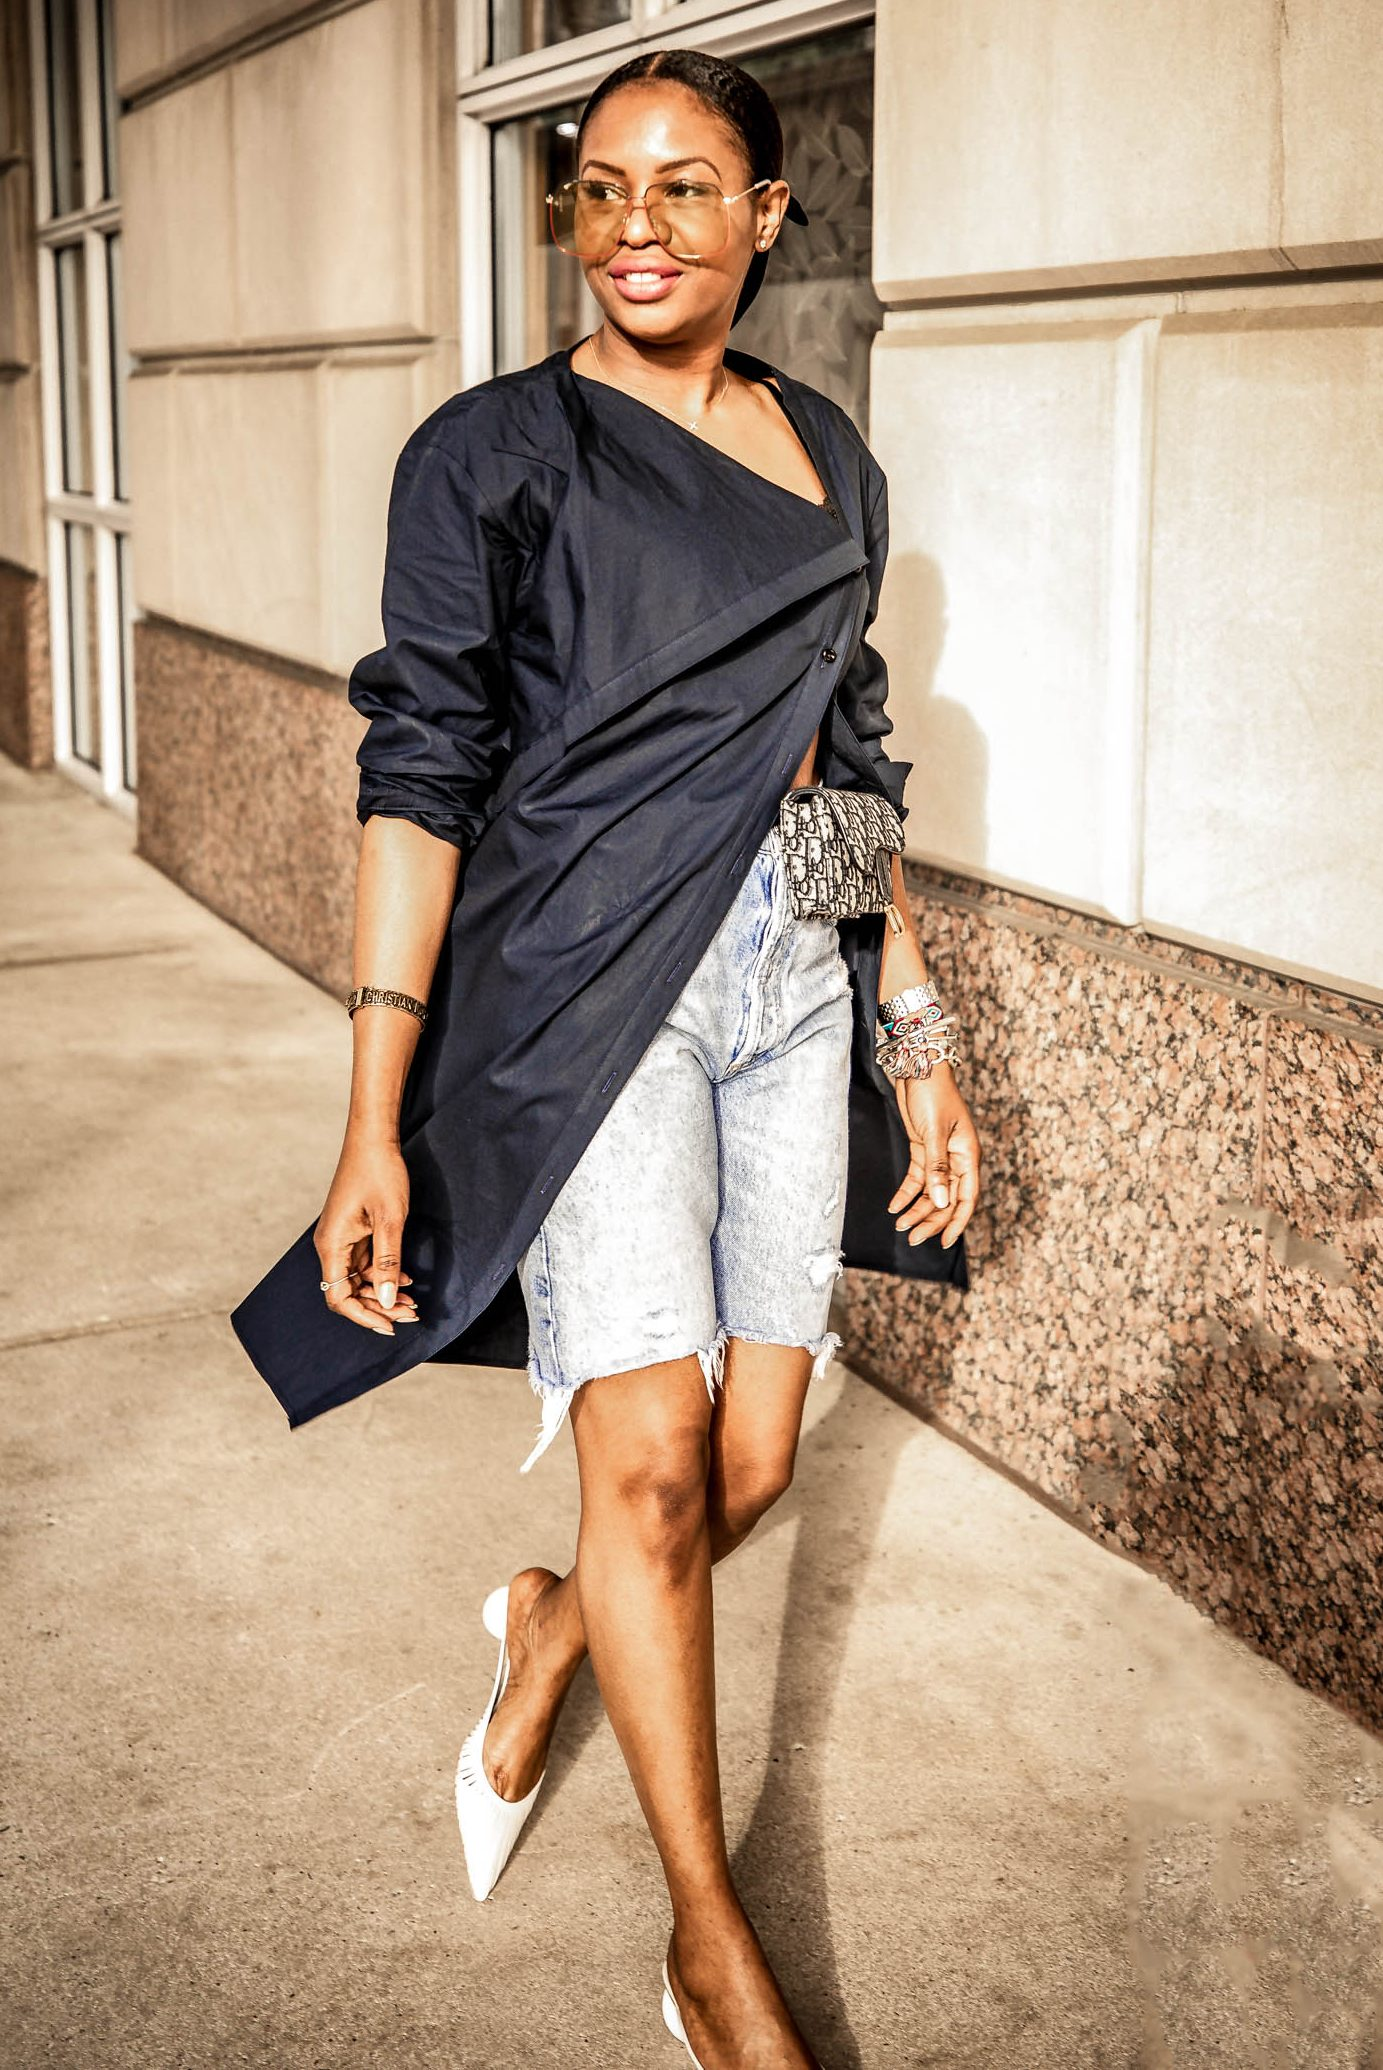 ways to wear shorts over 40, how to wear denim shorts, how to wear shorts over 40, awedbymoni